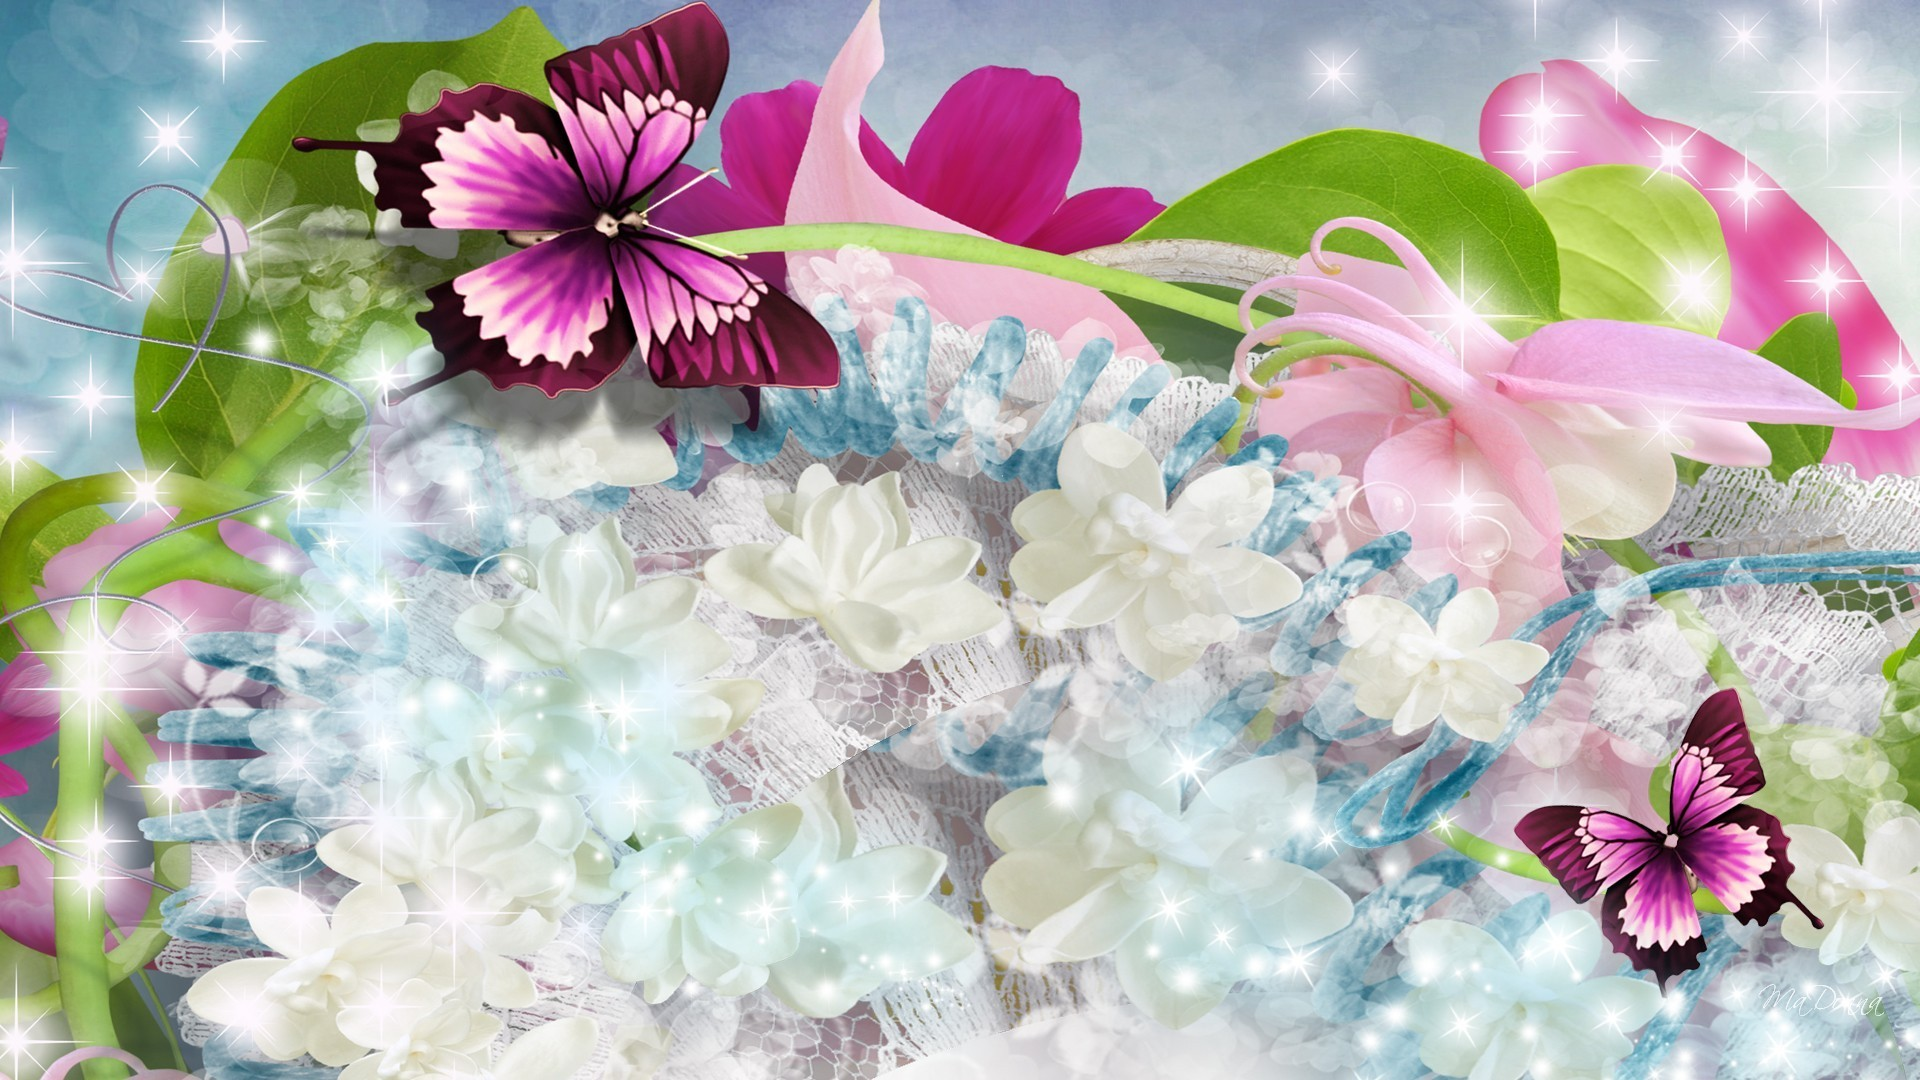 Res: 1920x1080, Butterflies Glowing Flowers Butterfly Soft Bows Bright Papillion Lace Pink  Ribbons Blue Fleurs Scatter Flower Wallpapers Free Download For Mobile - ...